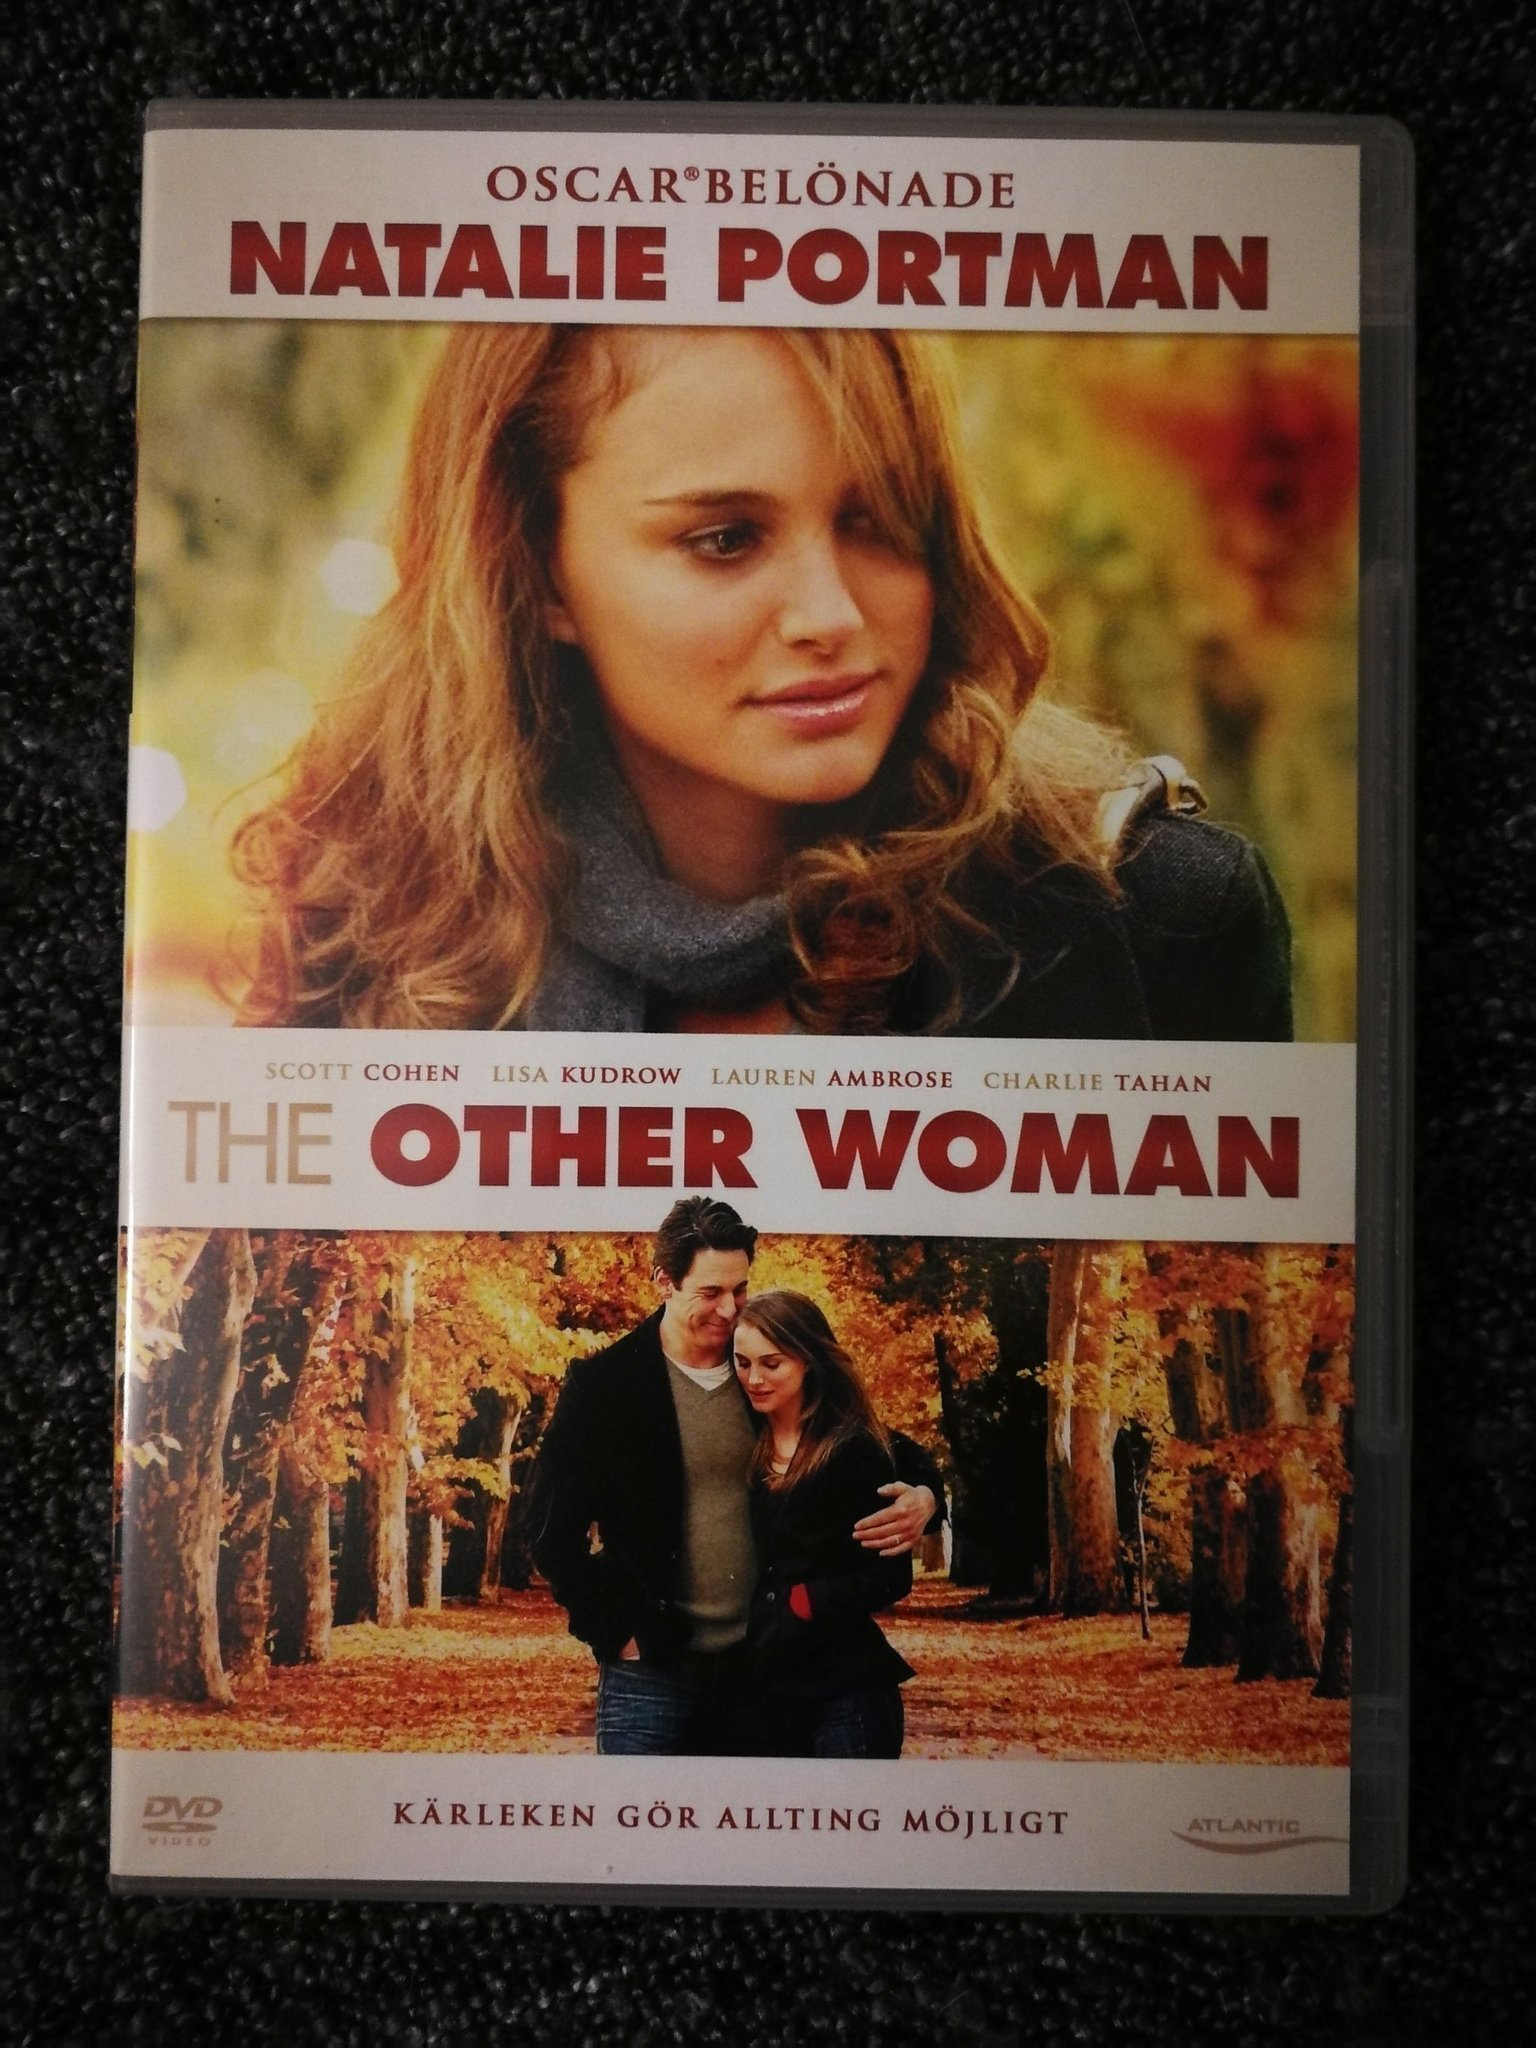 +++ the Other woman +++